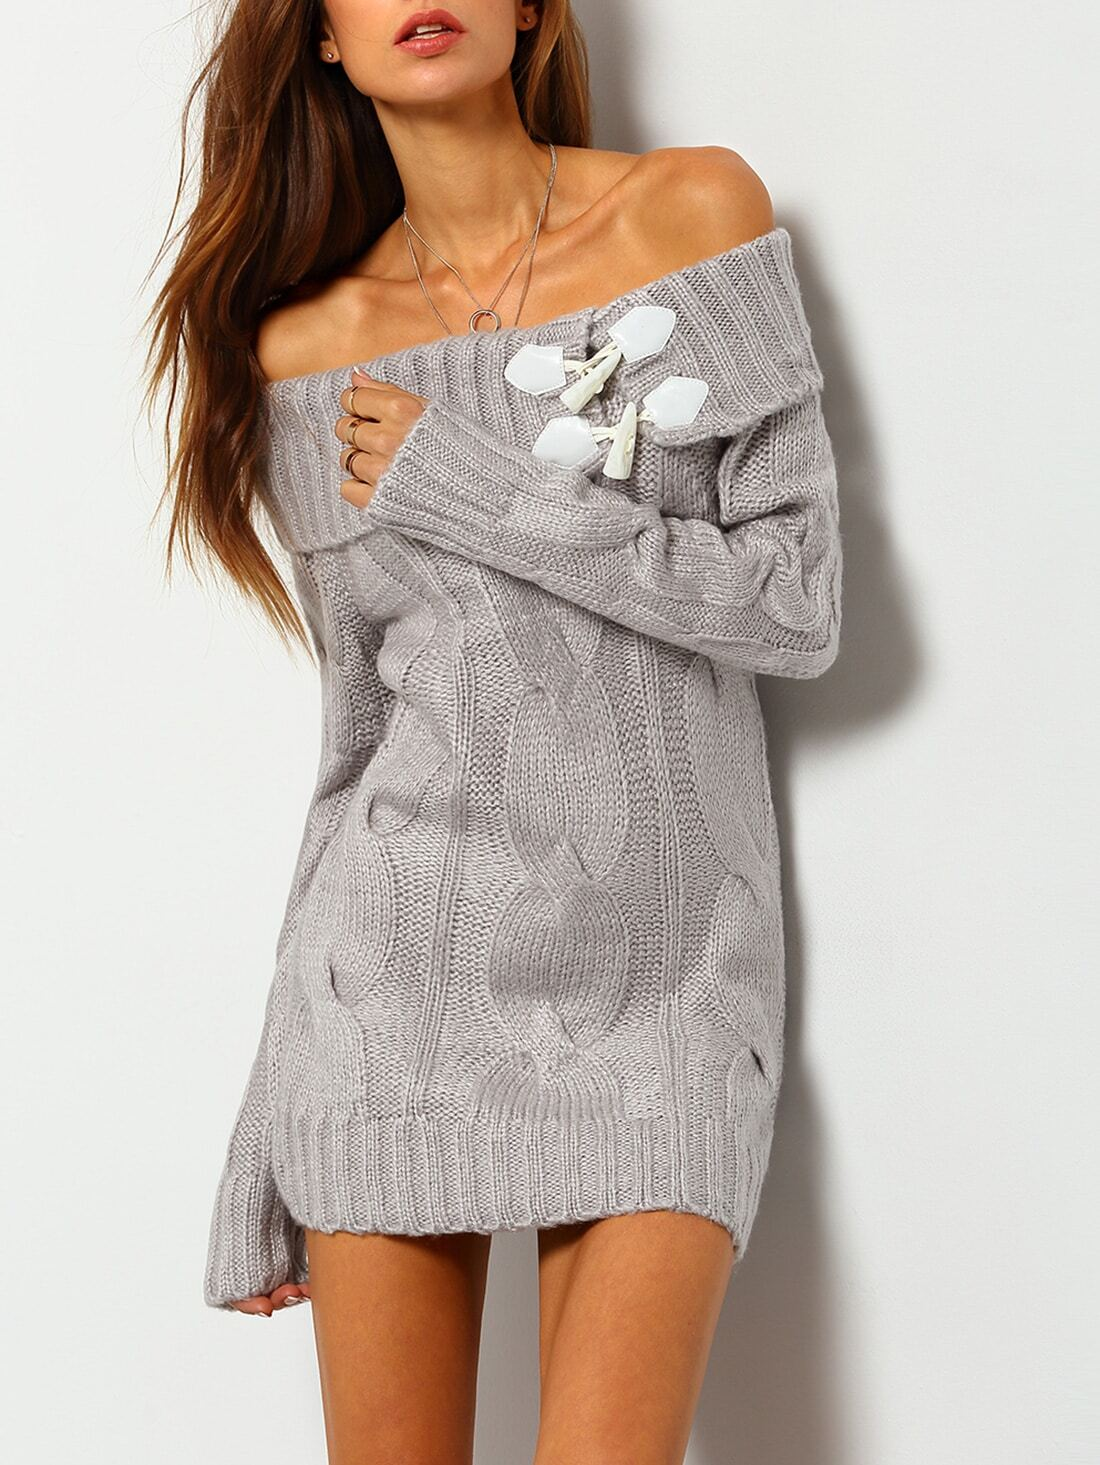 Shop our Collection of Women's Off The Shoulder Dresses at reformpan.gq for the Latest Designer Brands & Styles. FREE SHIPPING AVAILABLE! RACHEL Rachel Roy Off-The-Shoulder Bell-Sleeve Sweater Dress Enjoy Free Shipping at $49! See exclusions. Free ship at $ more like this. 2 colors. Maison Jules Ruffled Off-The-Shoulder Dress, Created.